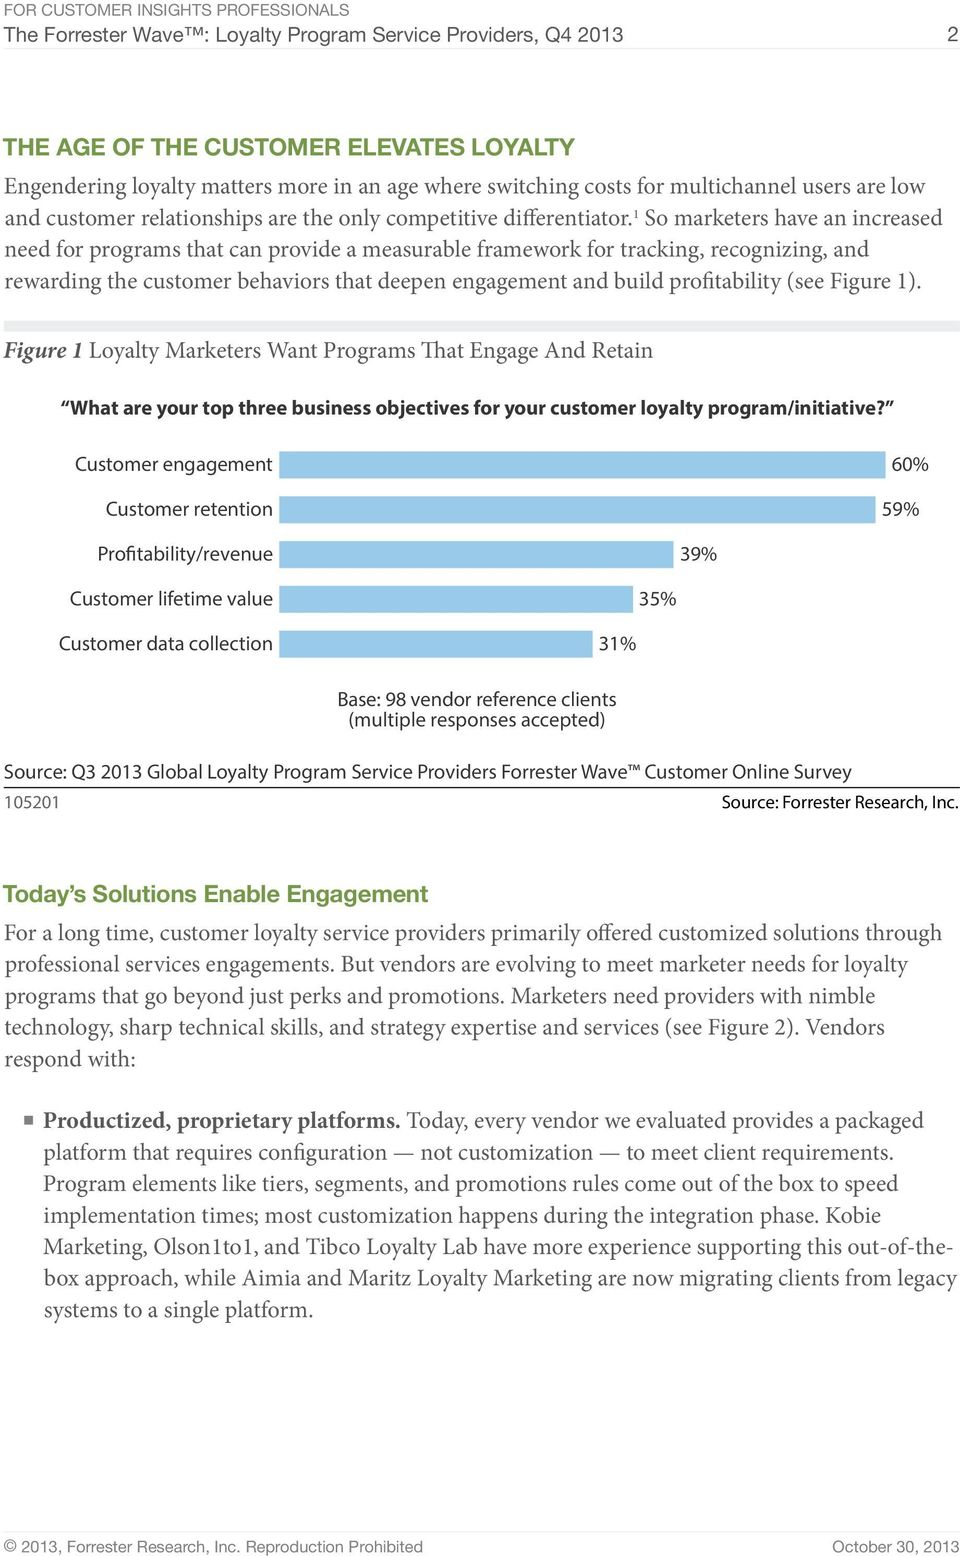 1 So marketers have an increased need for programs that can provide a measurable framework for tracking, recognizing, and rewarding the customer behaviors that deepen engagement and build